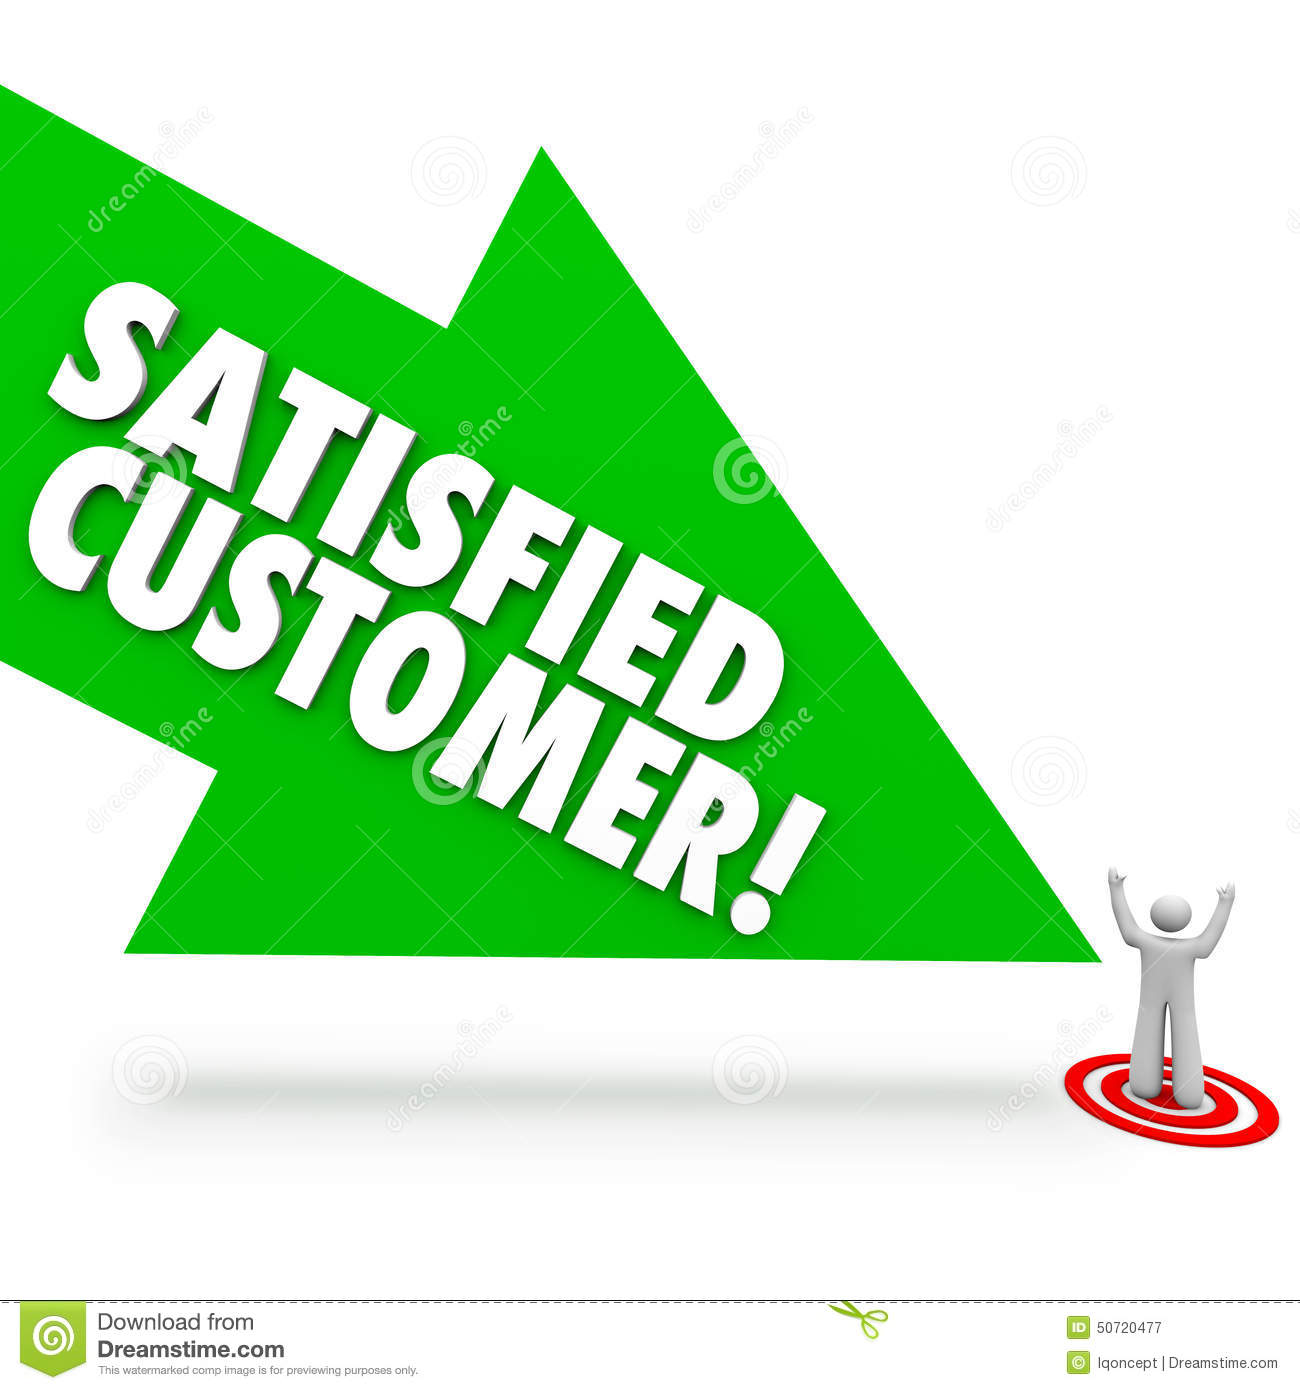 satisfaction of customers It takes continuous effort to maintain high customer satisfaction levels as markets shrink, companies are scrambling to boost customer satisfaction and keep their current customers rather than devoting additional resources to chase potential new customers the claim that it costs five to eight.